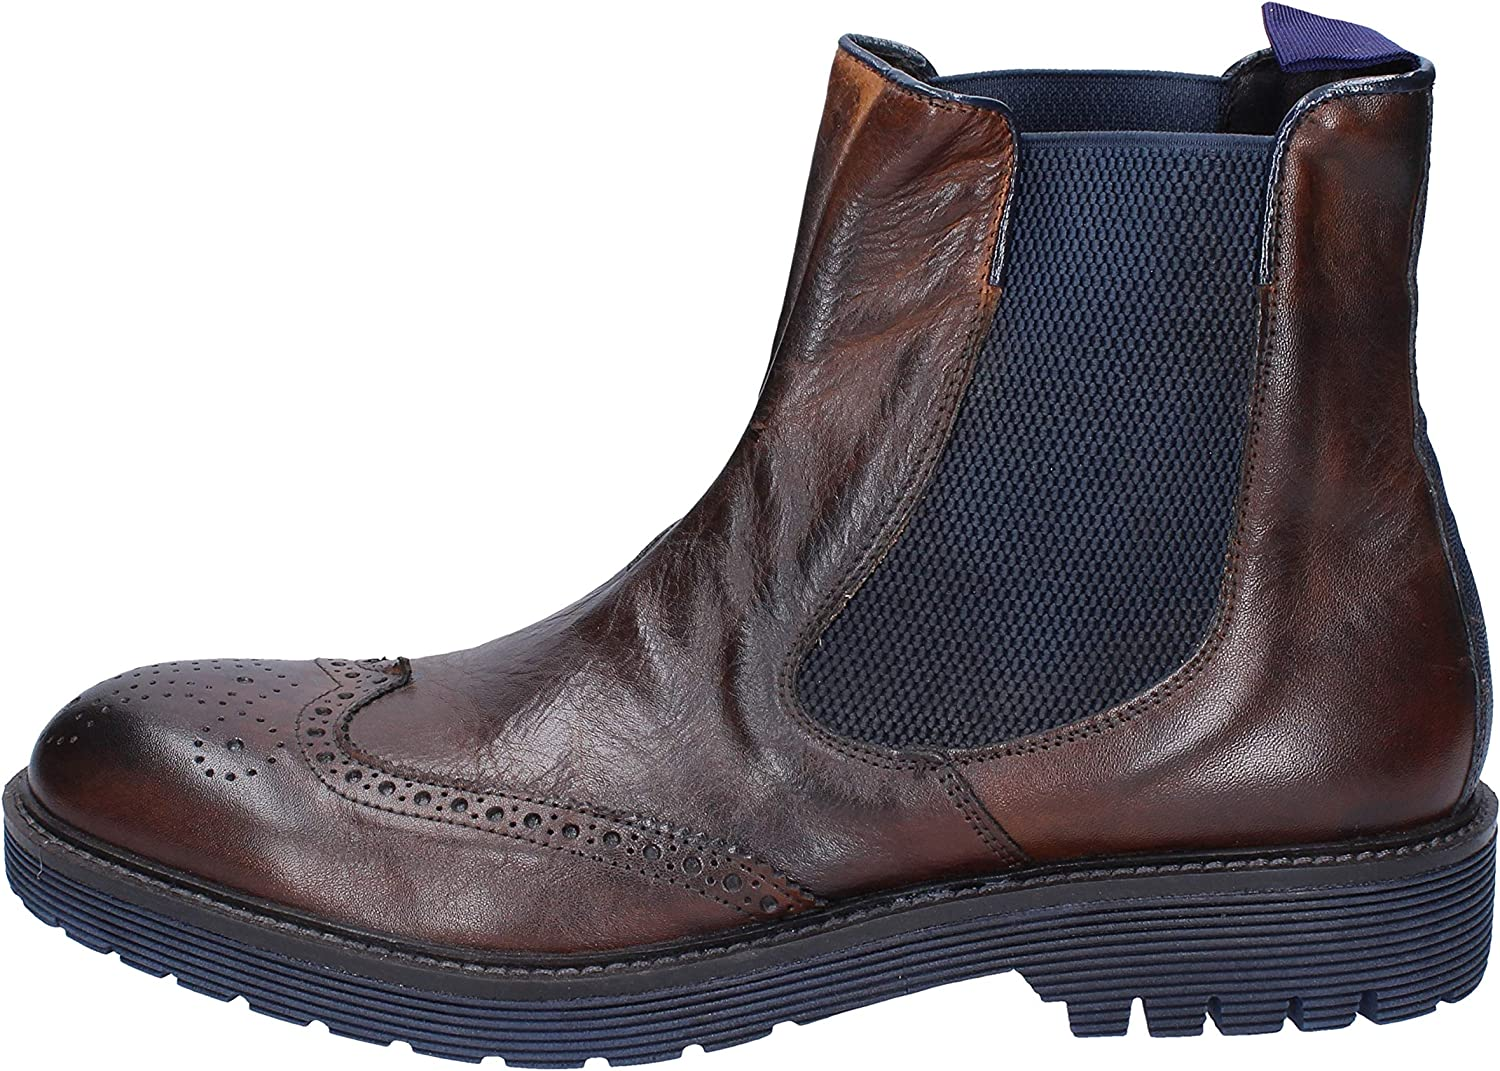 +2 PIU' DUE Boots Mens Leather Brown